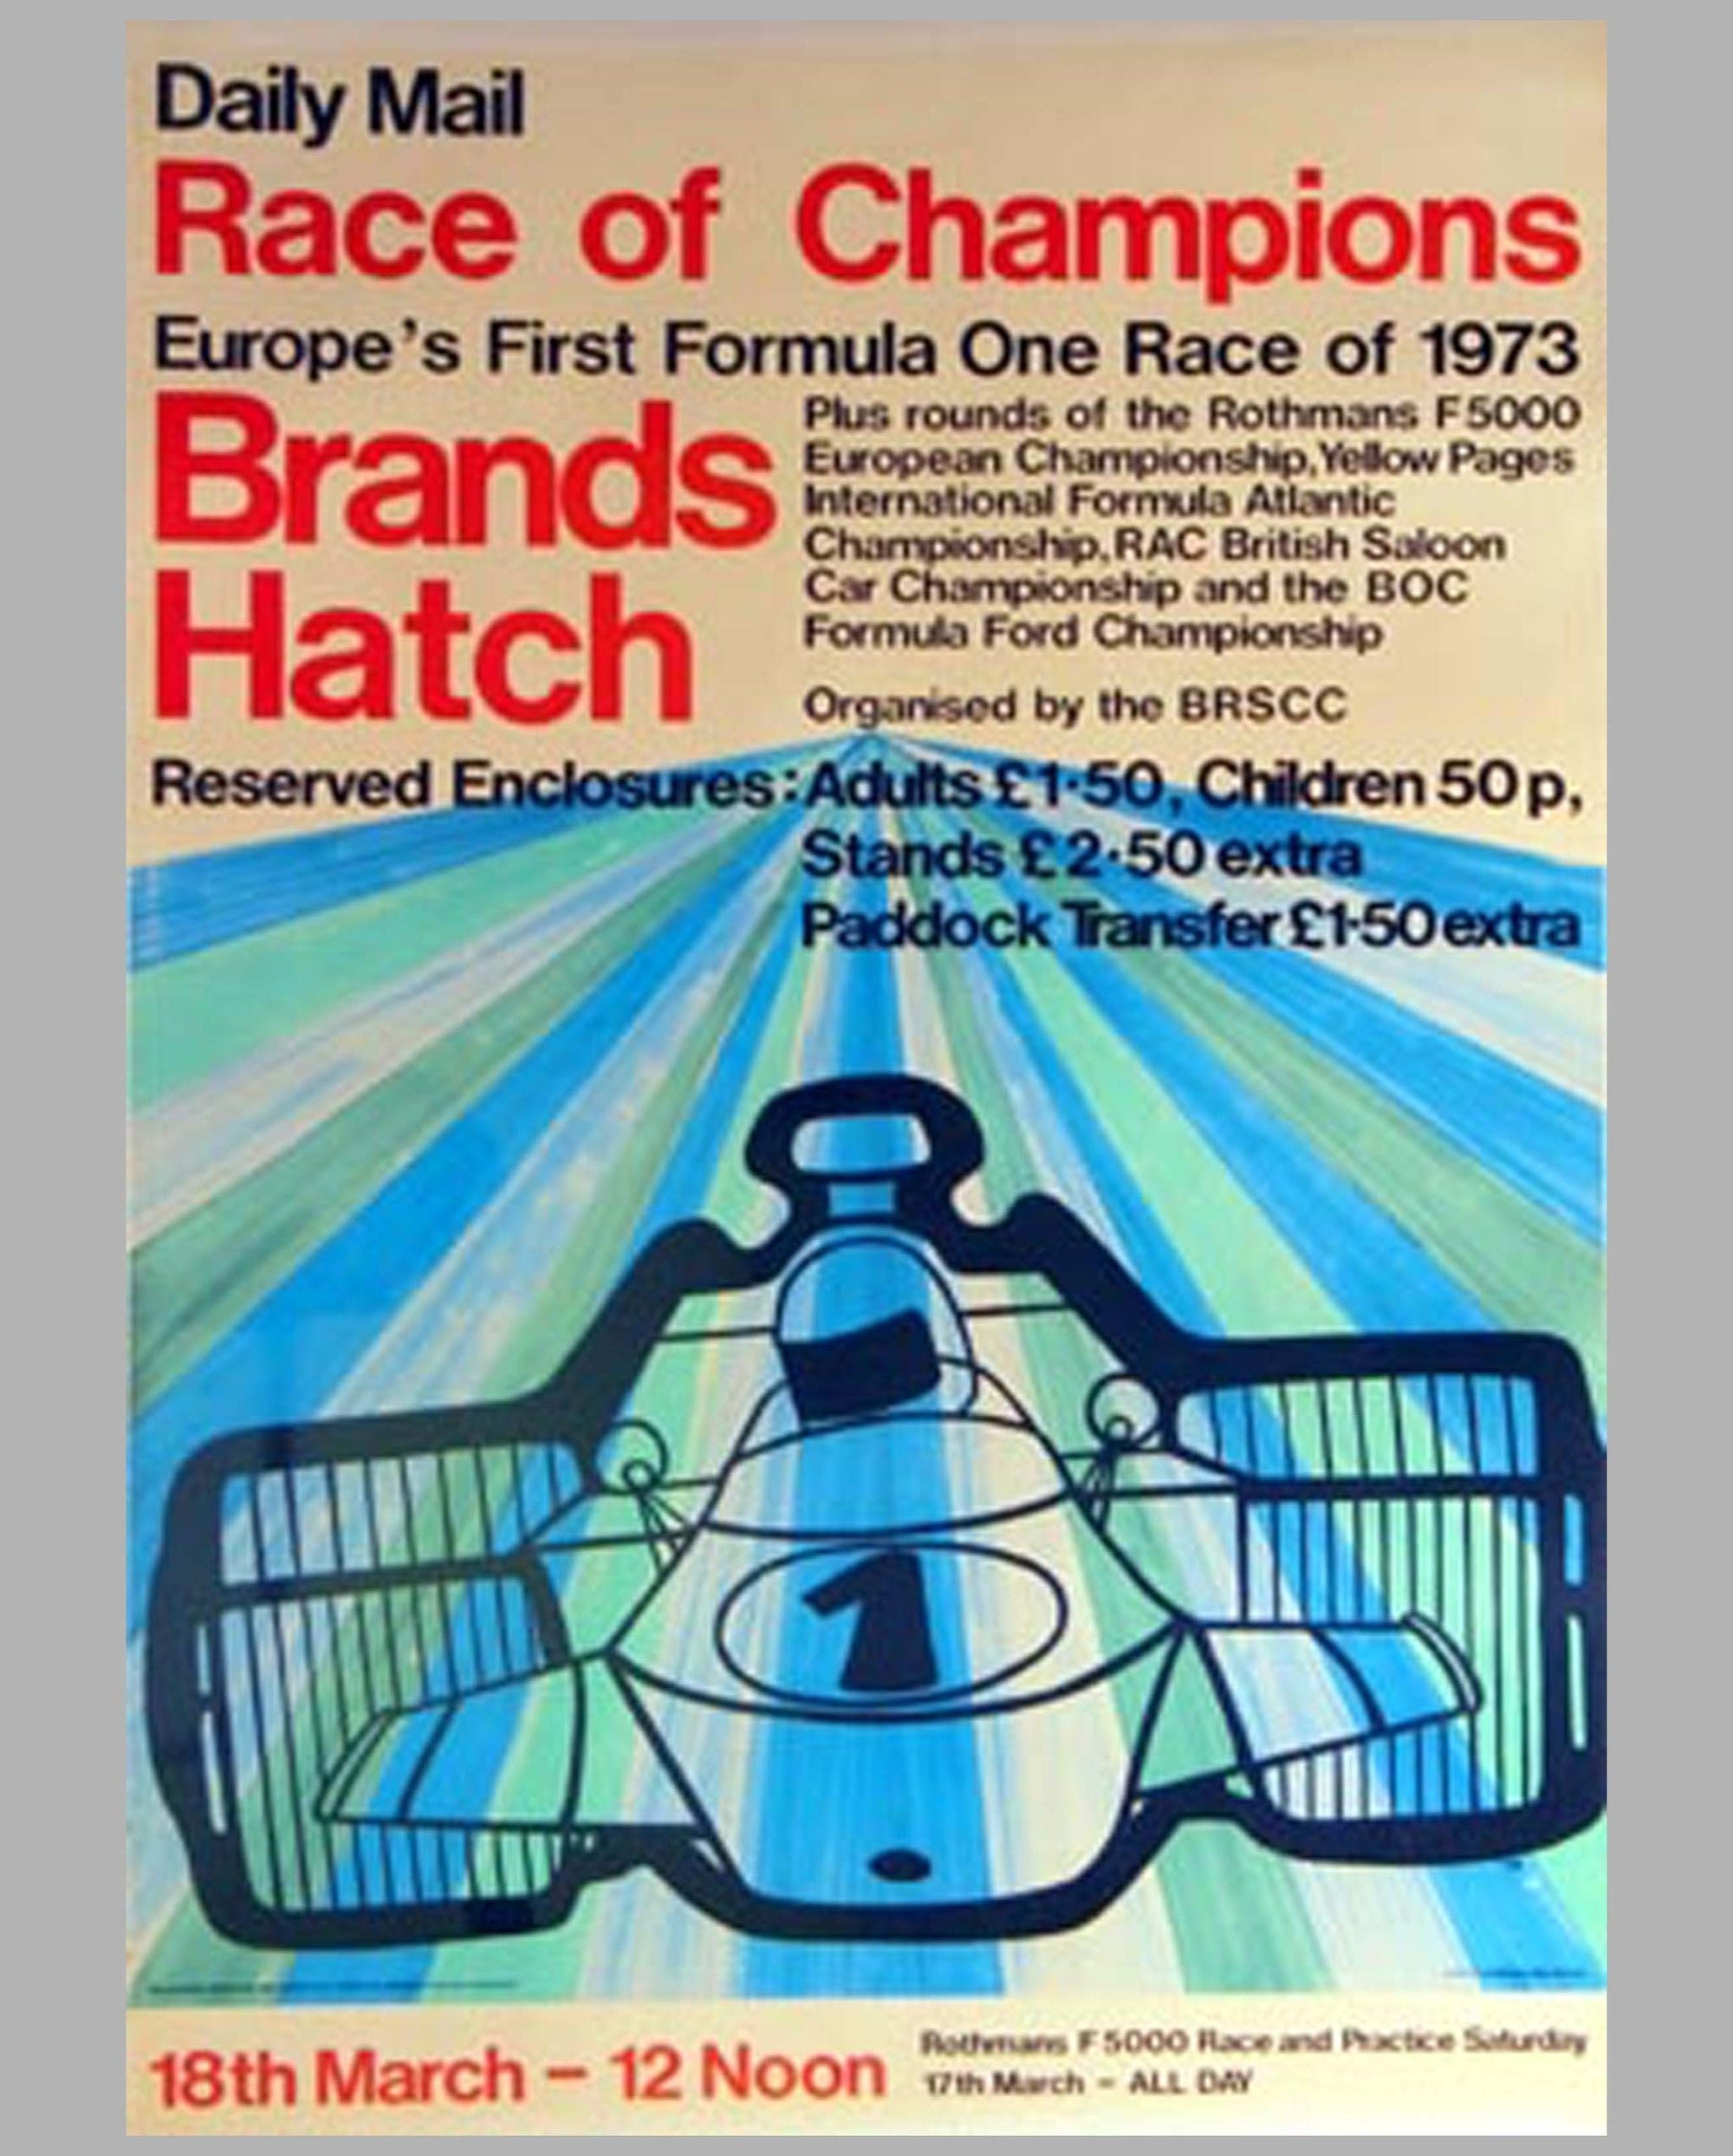 Brands Hatch F1-1973 (Race of Champions) event poster